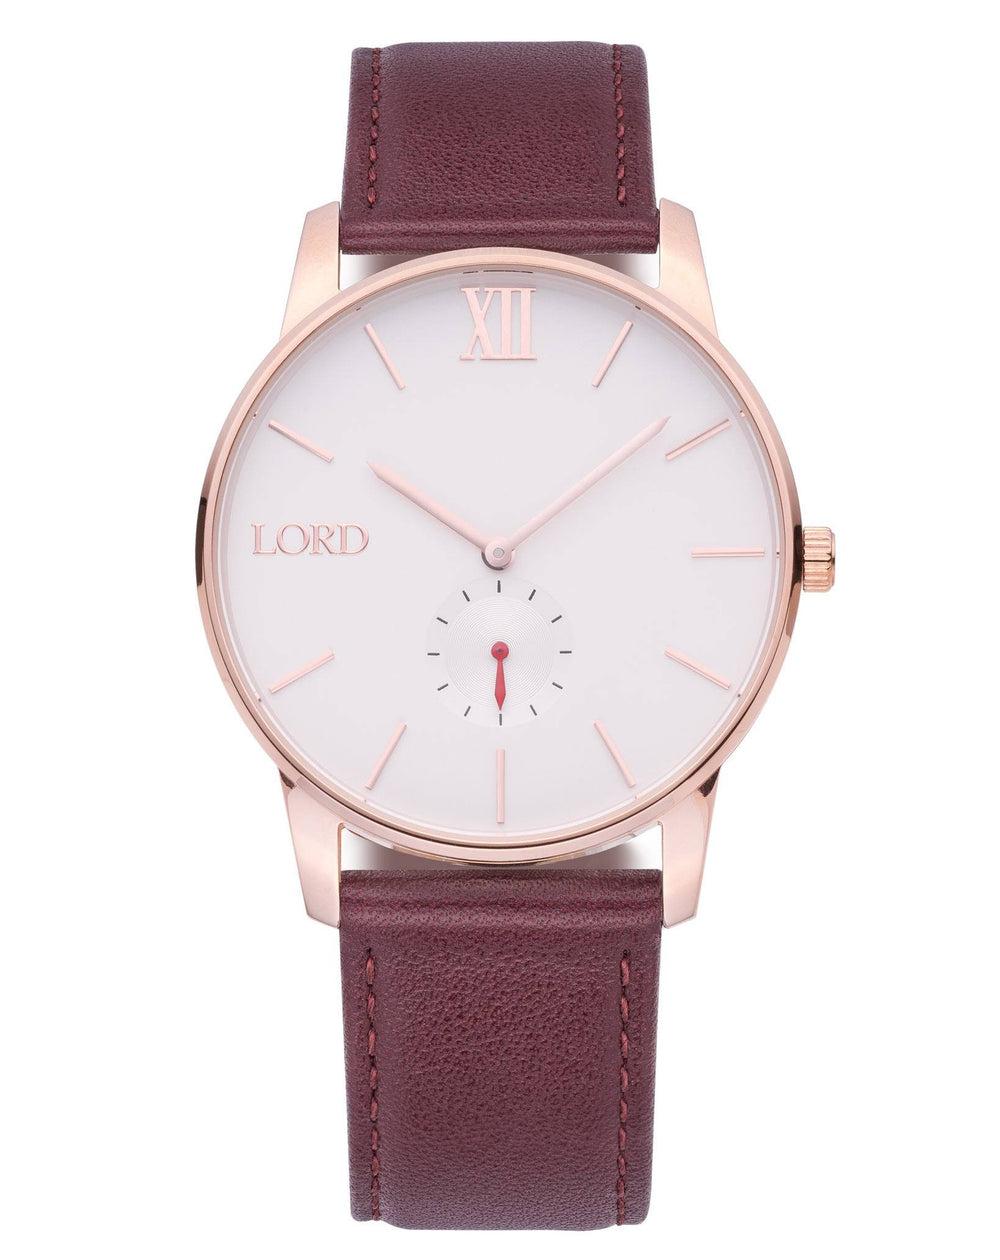 Rose Gold Brown Watch| Men's Watches | Lord Timepieces